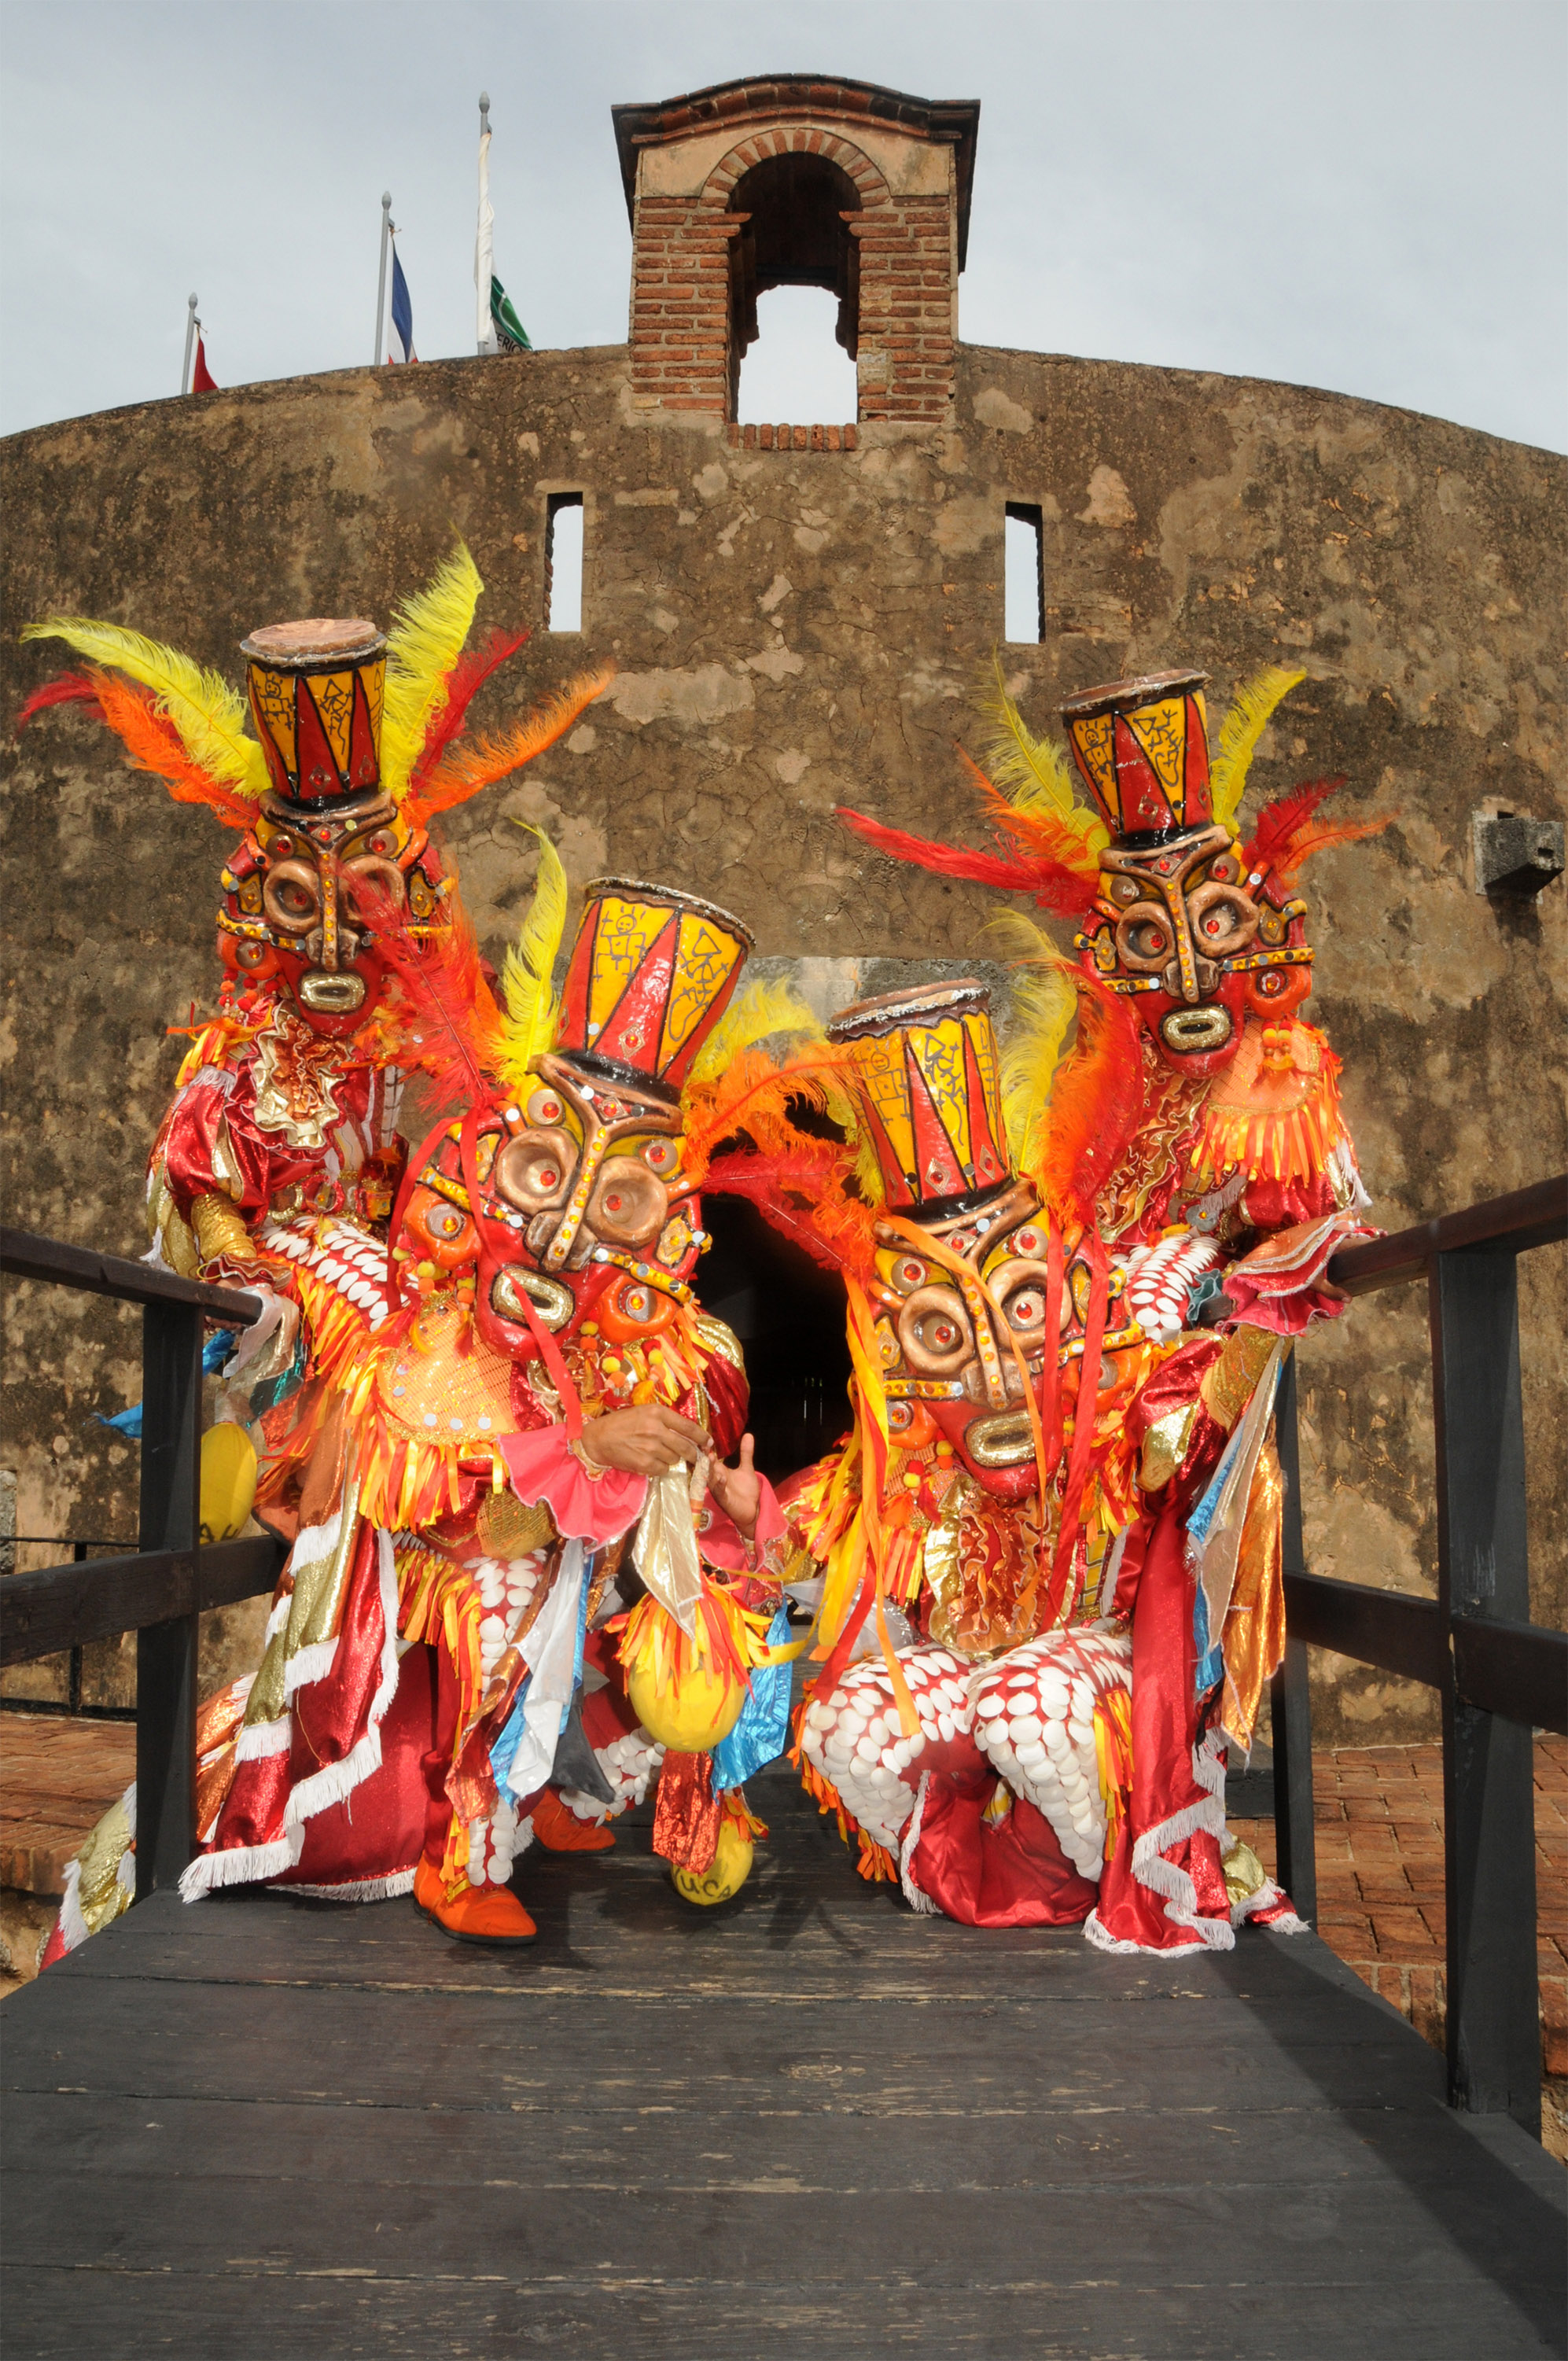 Carnaval at Dominican Republic